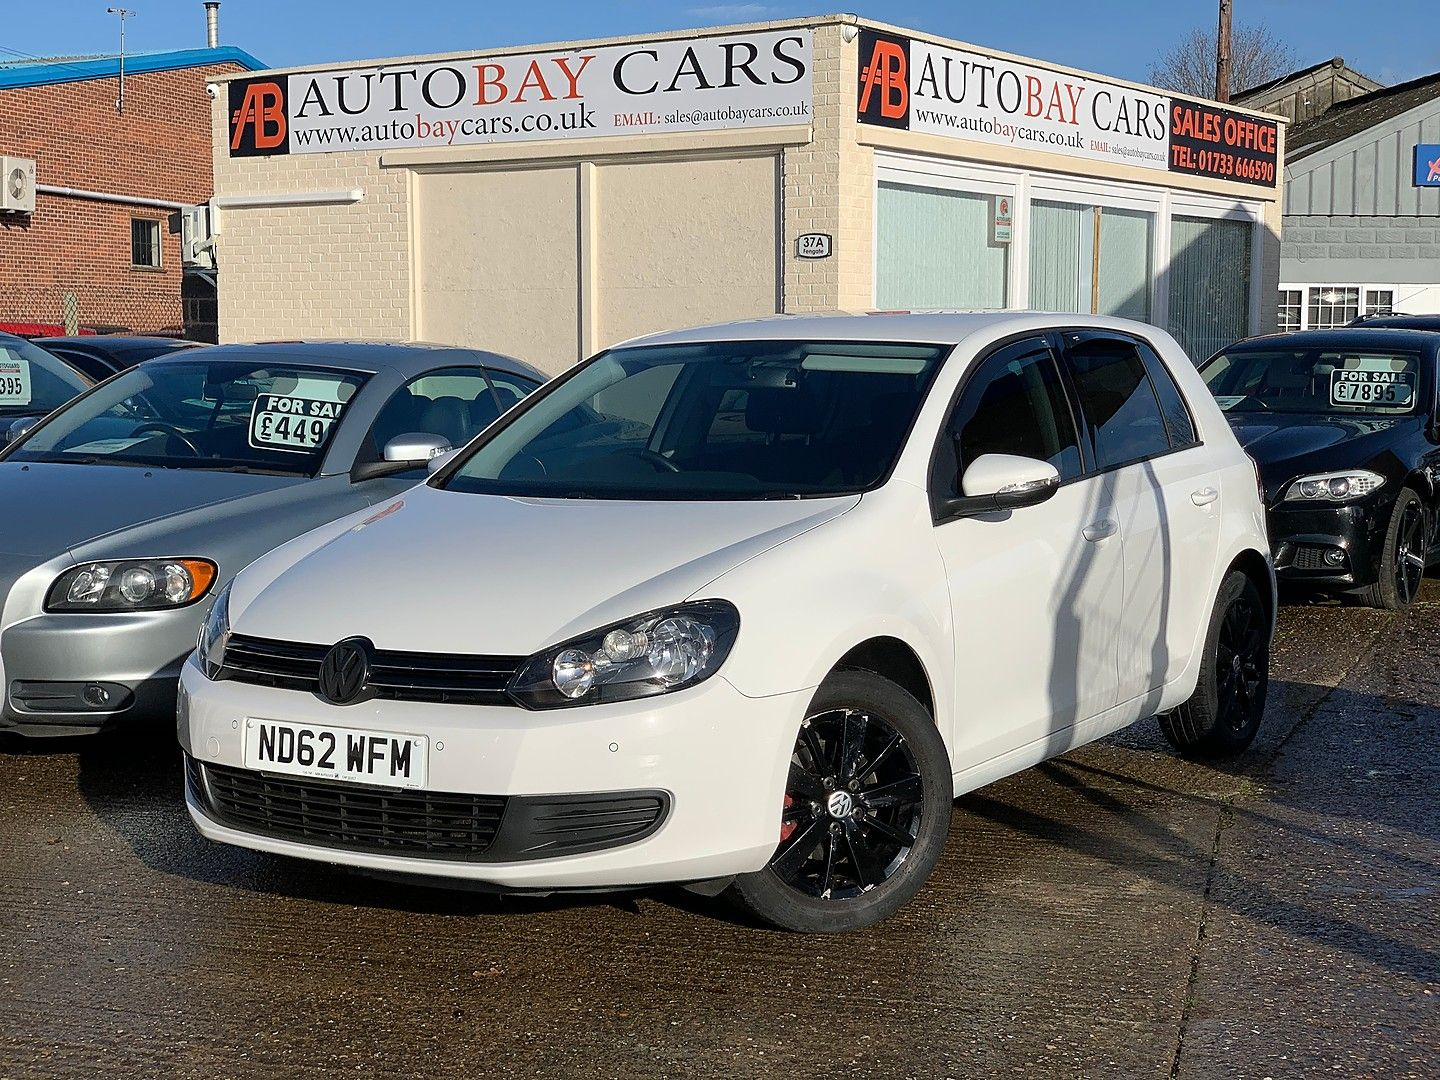 VOLKSWAGENGolfMatch TDI 1.6 105 PS Final Edition for sale